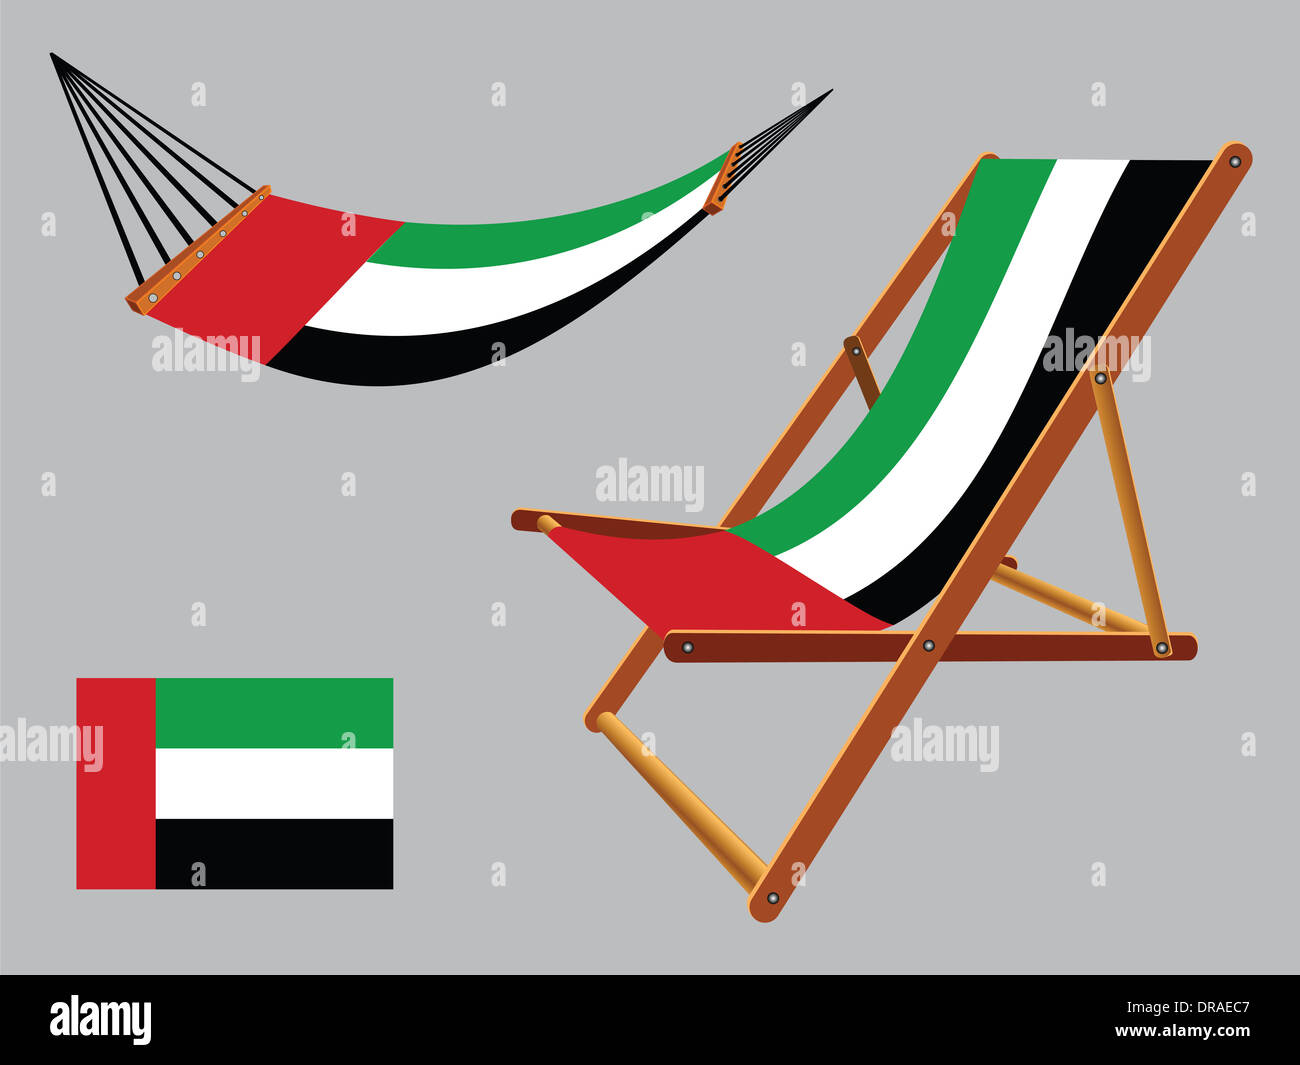 United Arab Emirates Hammock And Deck Chair Set Against Gray